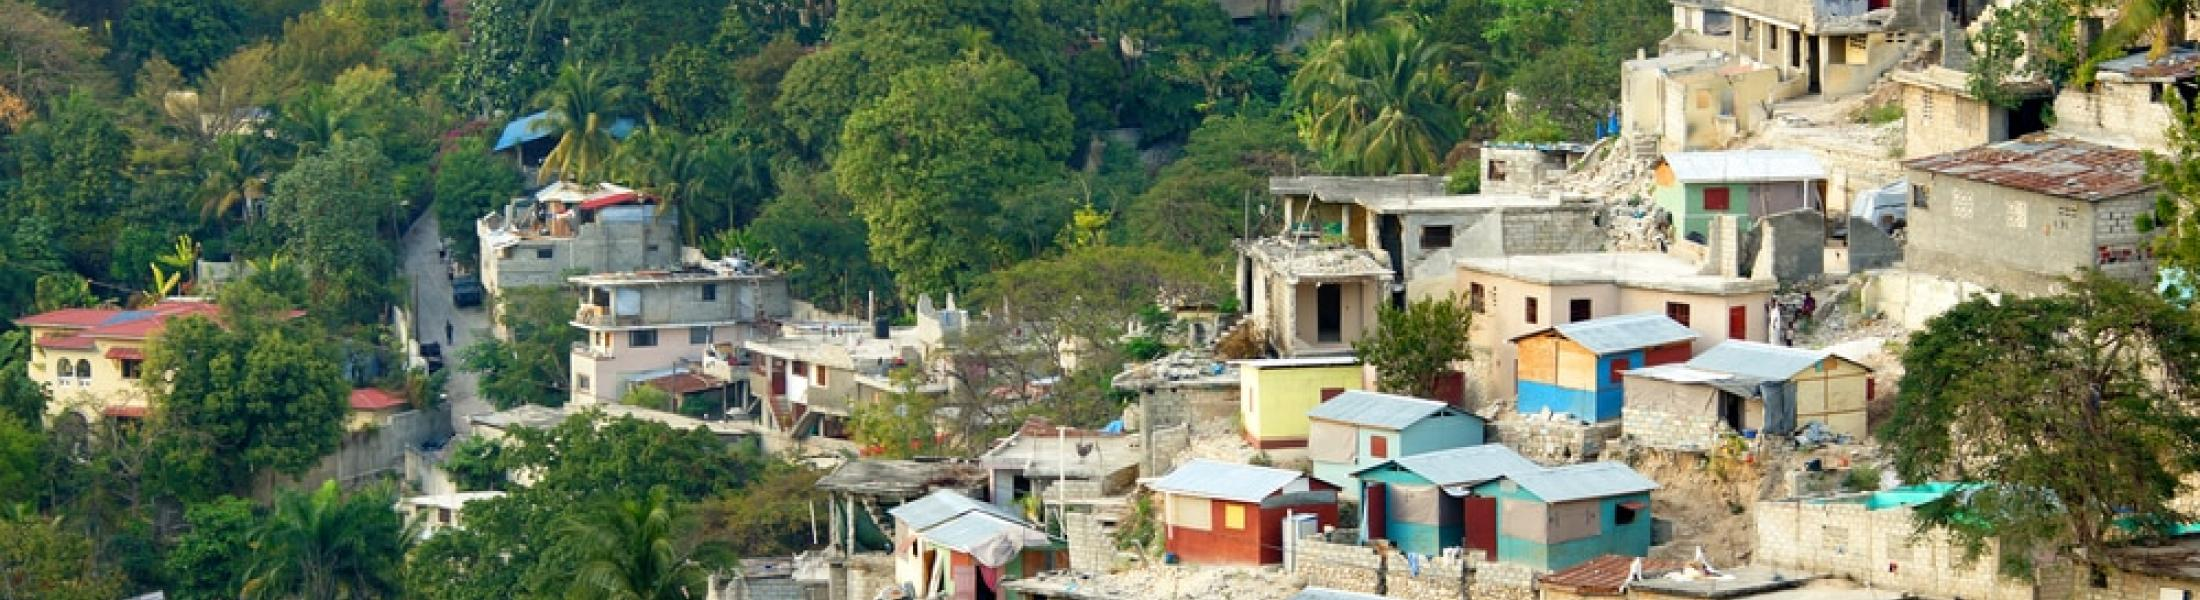 Mountainside village in Haiti